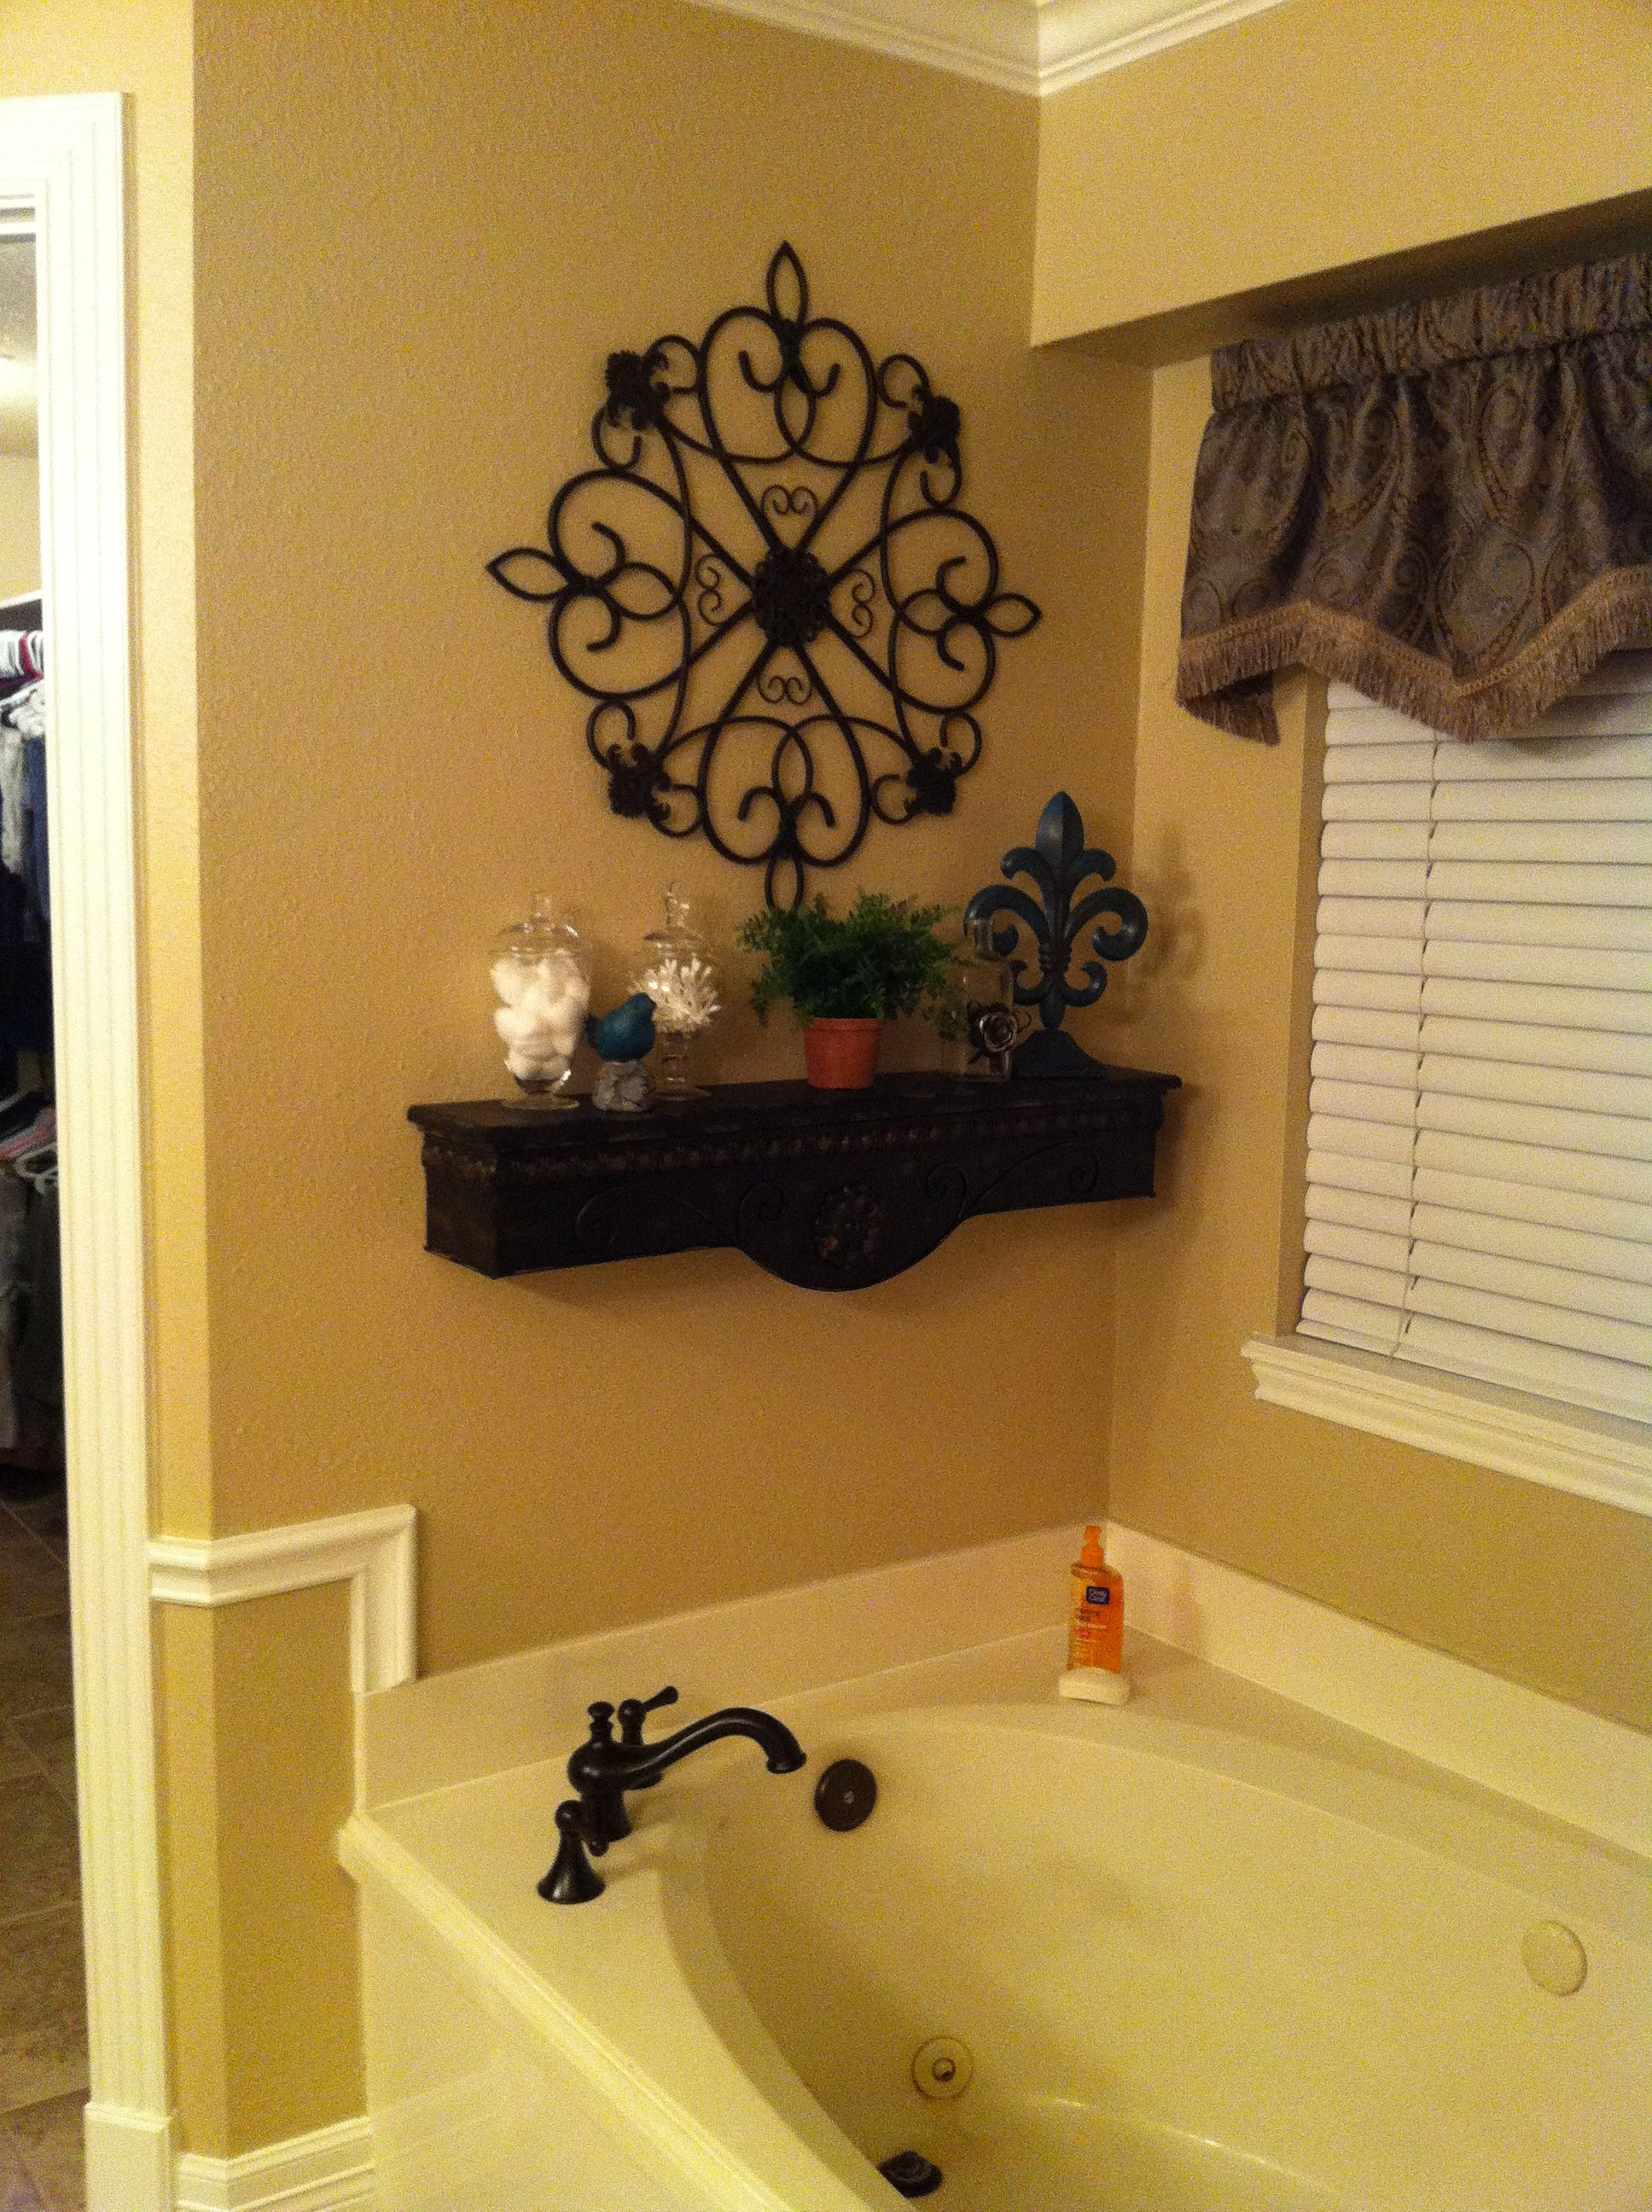 Decorative Shelf Above Bath Tub Bathtub Decor Garden Tub